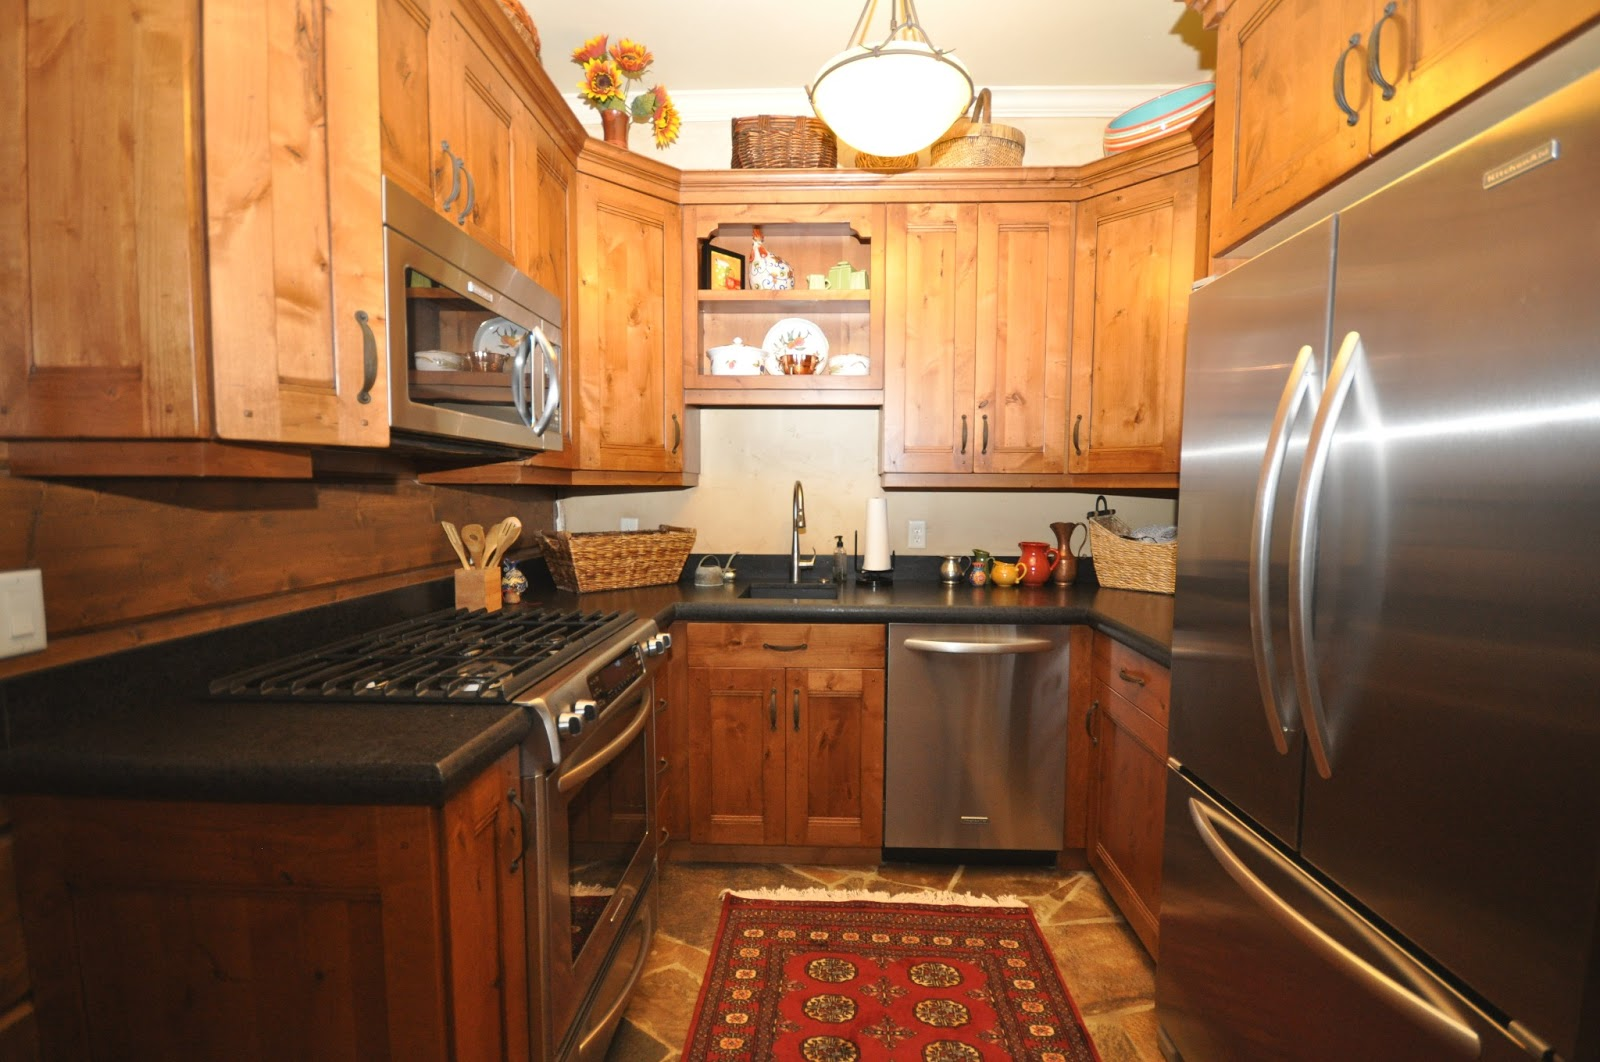 The shanna day team dream of renting 116 white pine for O kitchen city of dreams